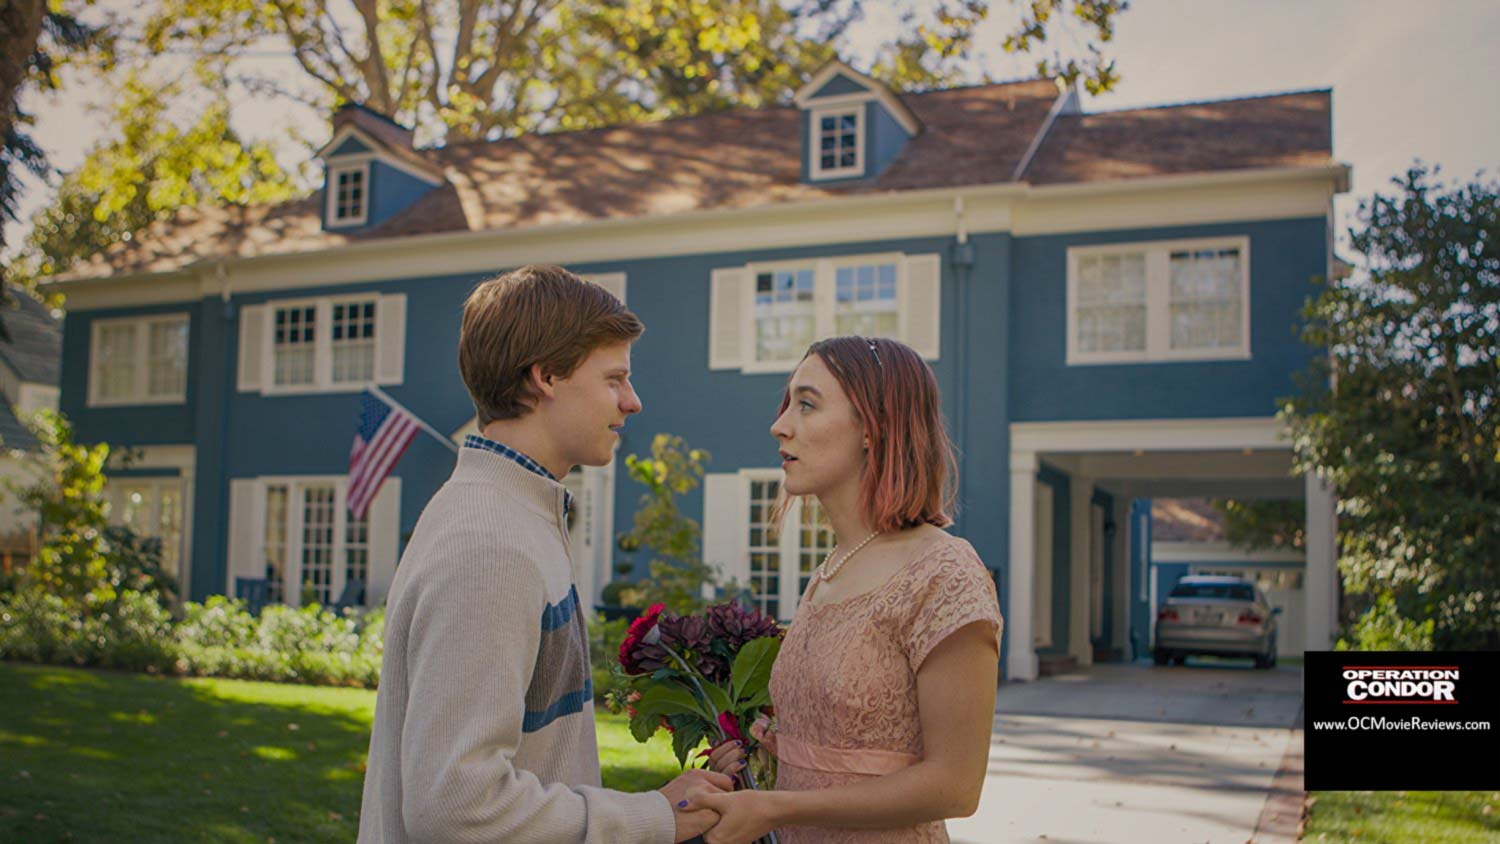 Lady Bird Blu-Ray Review – The Lady Looks Good, In Blu - OC Movie Reviews - Movie Reviews, Movie News, Documentary Reviews, Short Films, Short Film Reviews, Trailers, Movie Trailers, Interviews, film reviews, film news, hollywood, indie films, documentaries